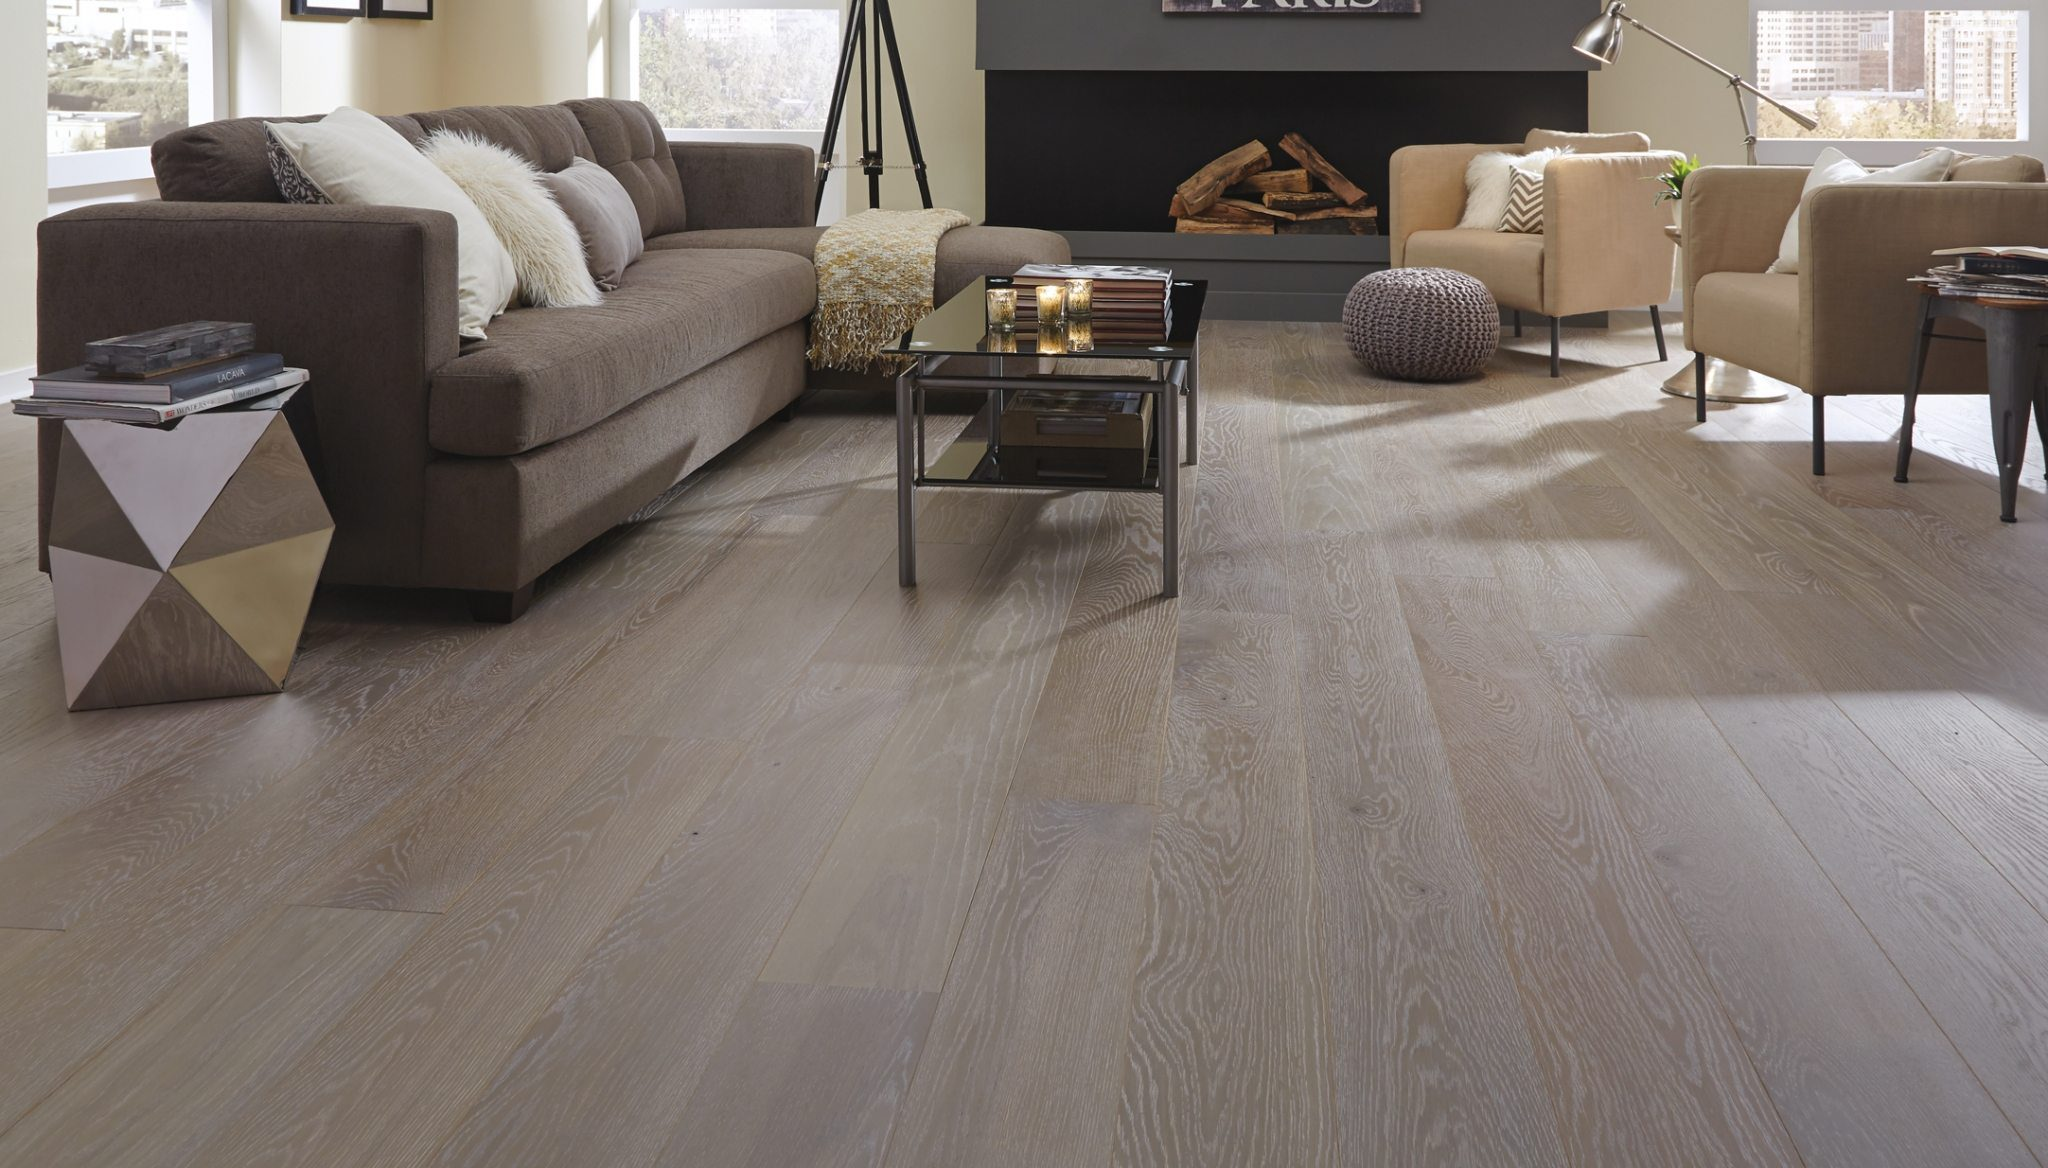 How To Mix Wood Flooring Styles Amp Colors To Create A